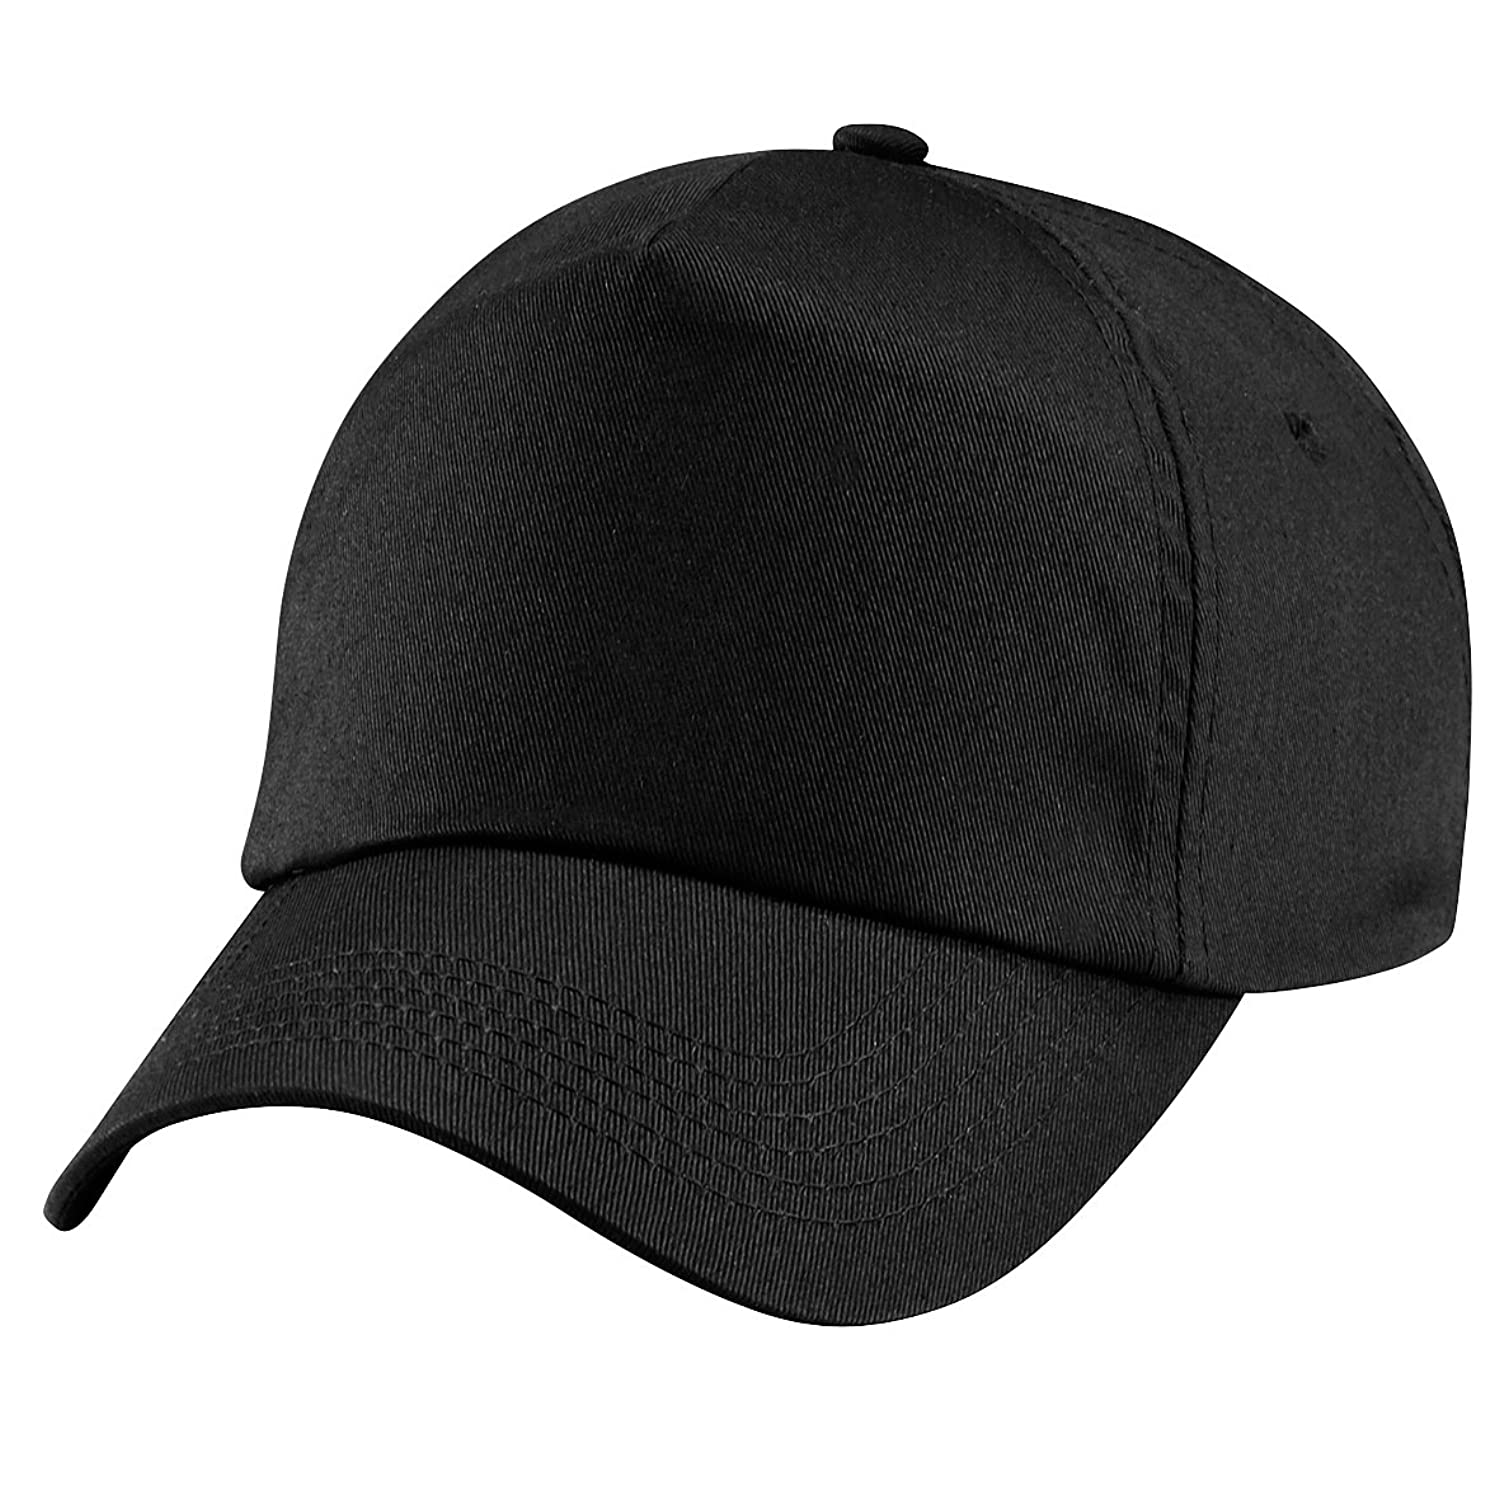 Beechfield Unisex Plain Original 5 Panel Baseball Cap original inverter control panel fr du04